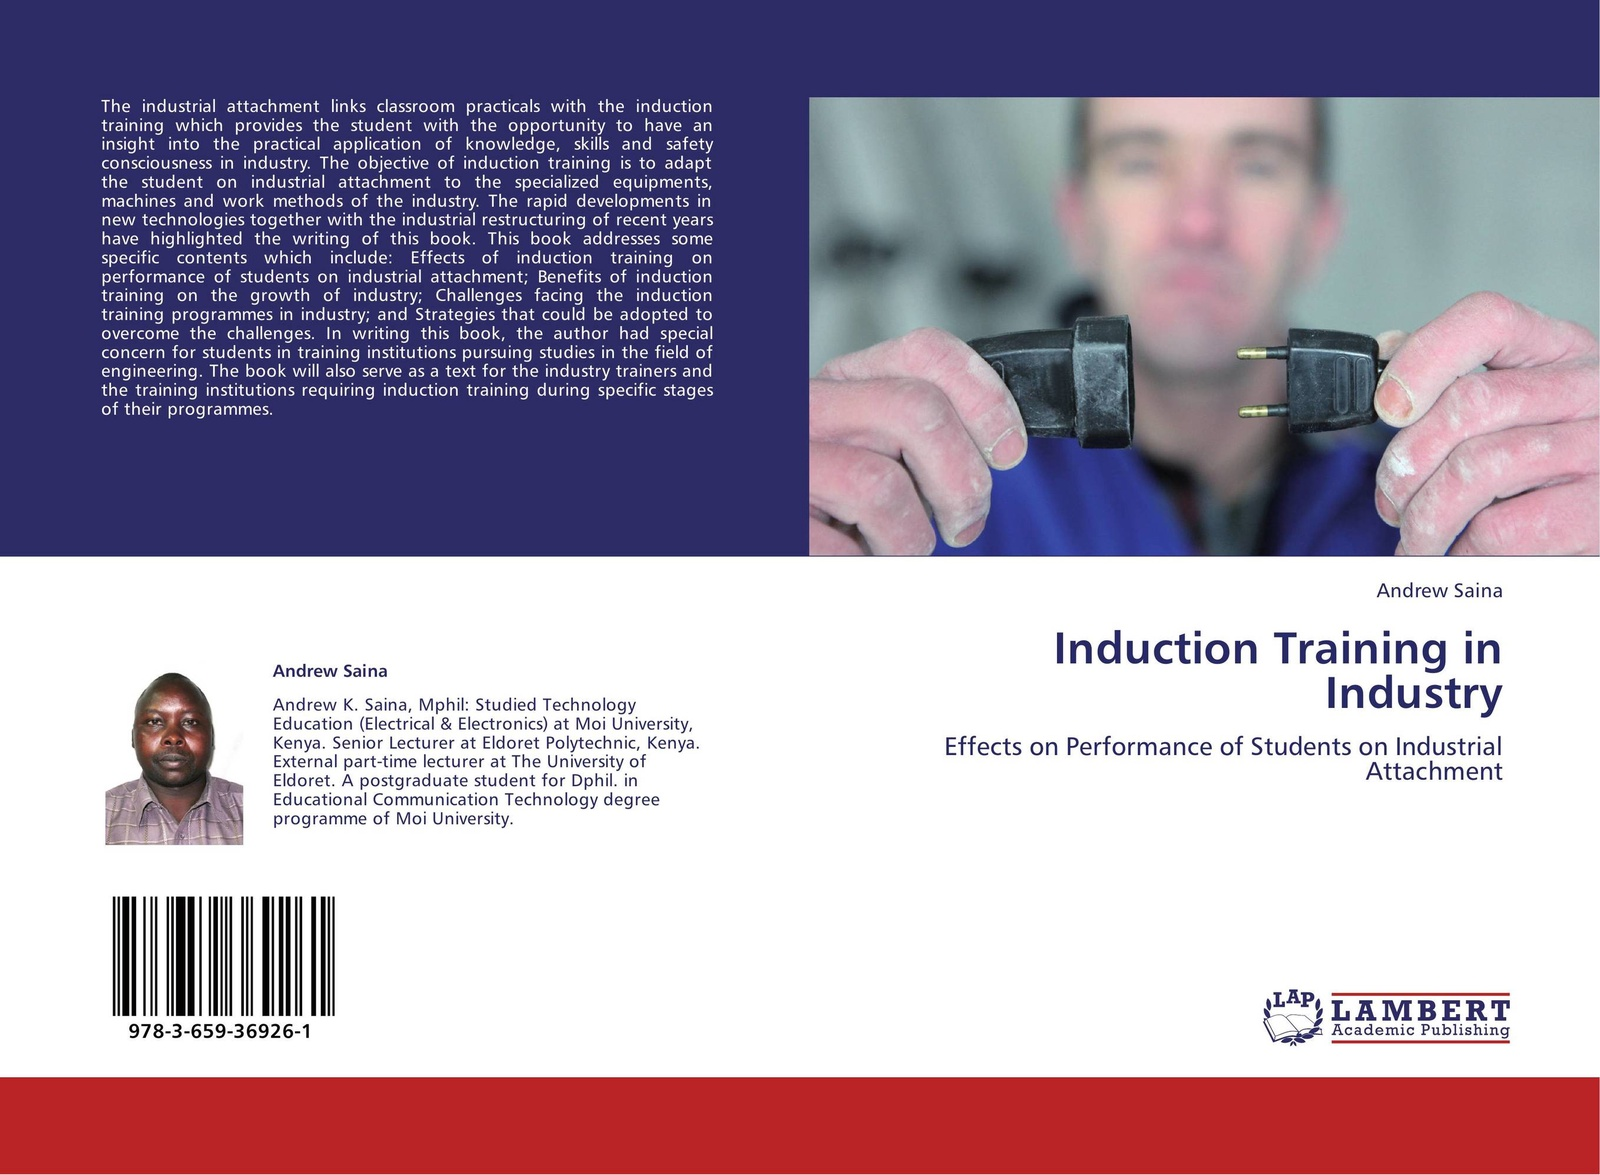 Andrew Saina Induction Training in Industry innovative reflections of teacher training programmes